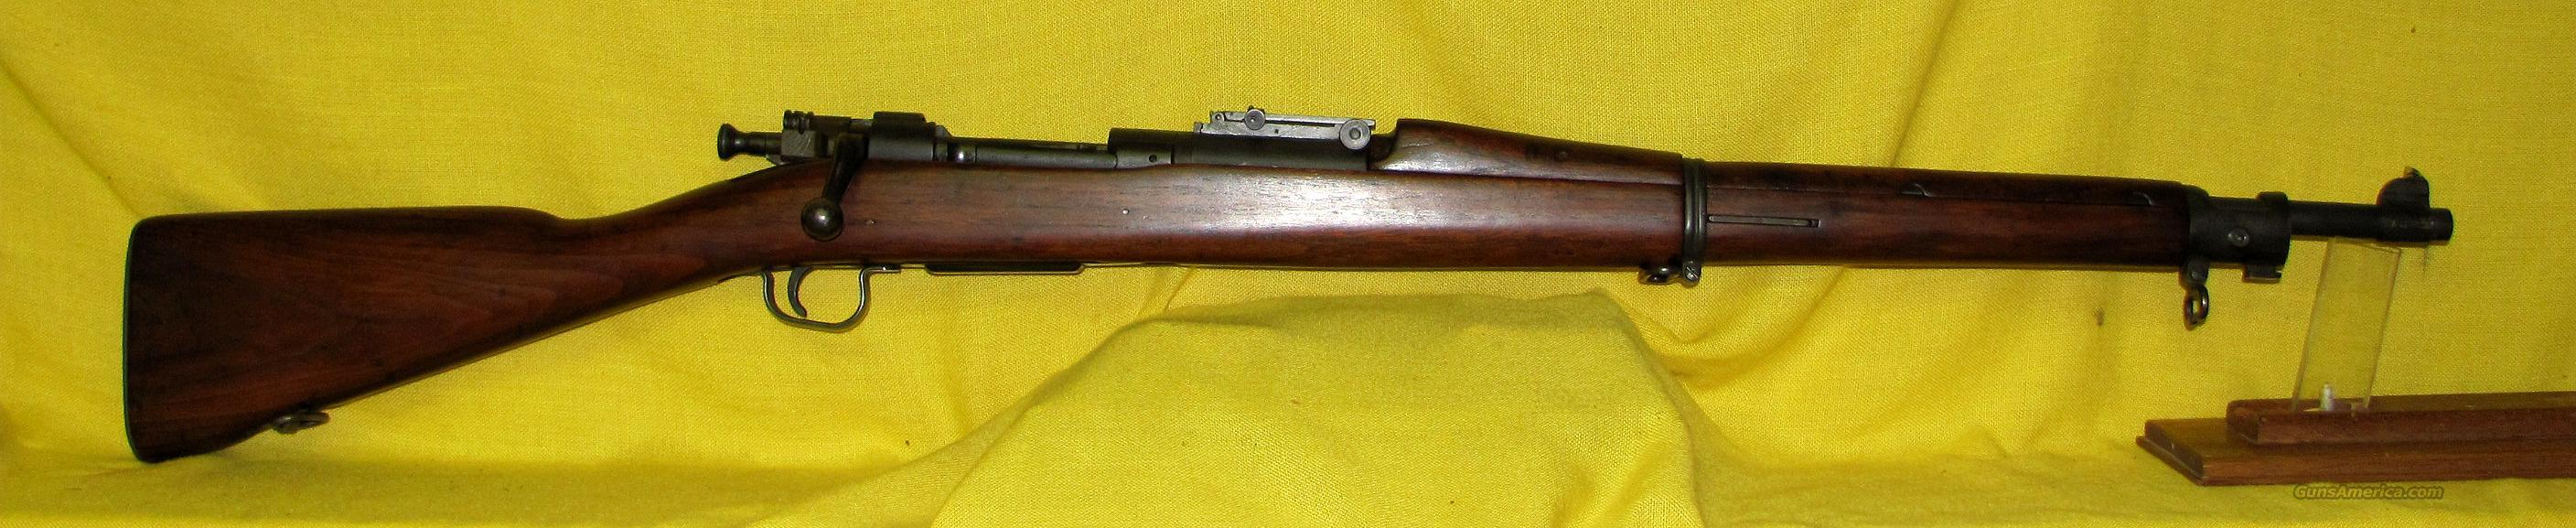 SPRINGFIELD 1903 MARK 1 30/06  Guns > Rifles > Military Misc. Rifles US > 1903 Springfield/Variants